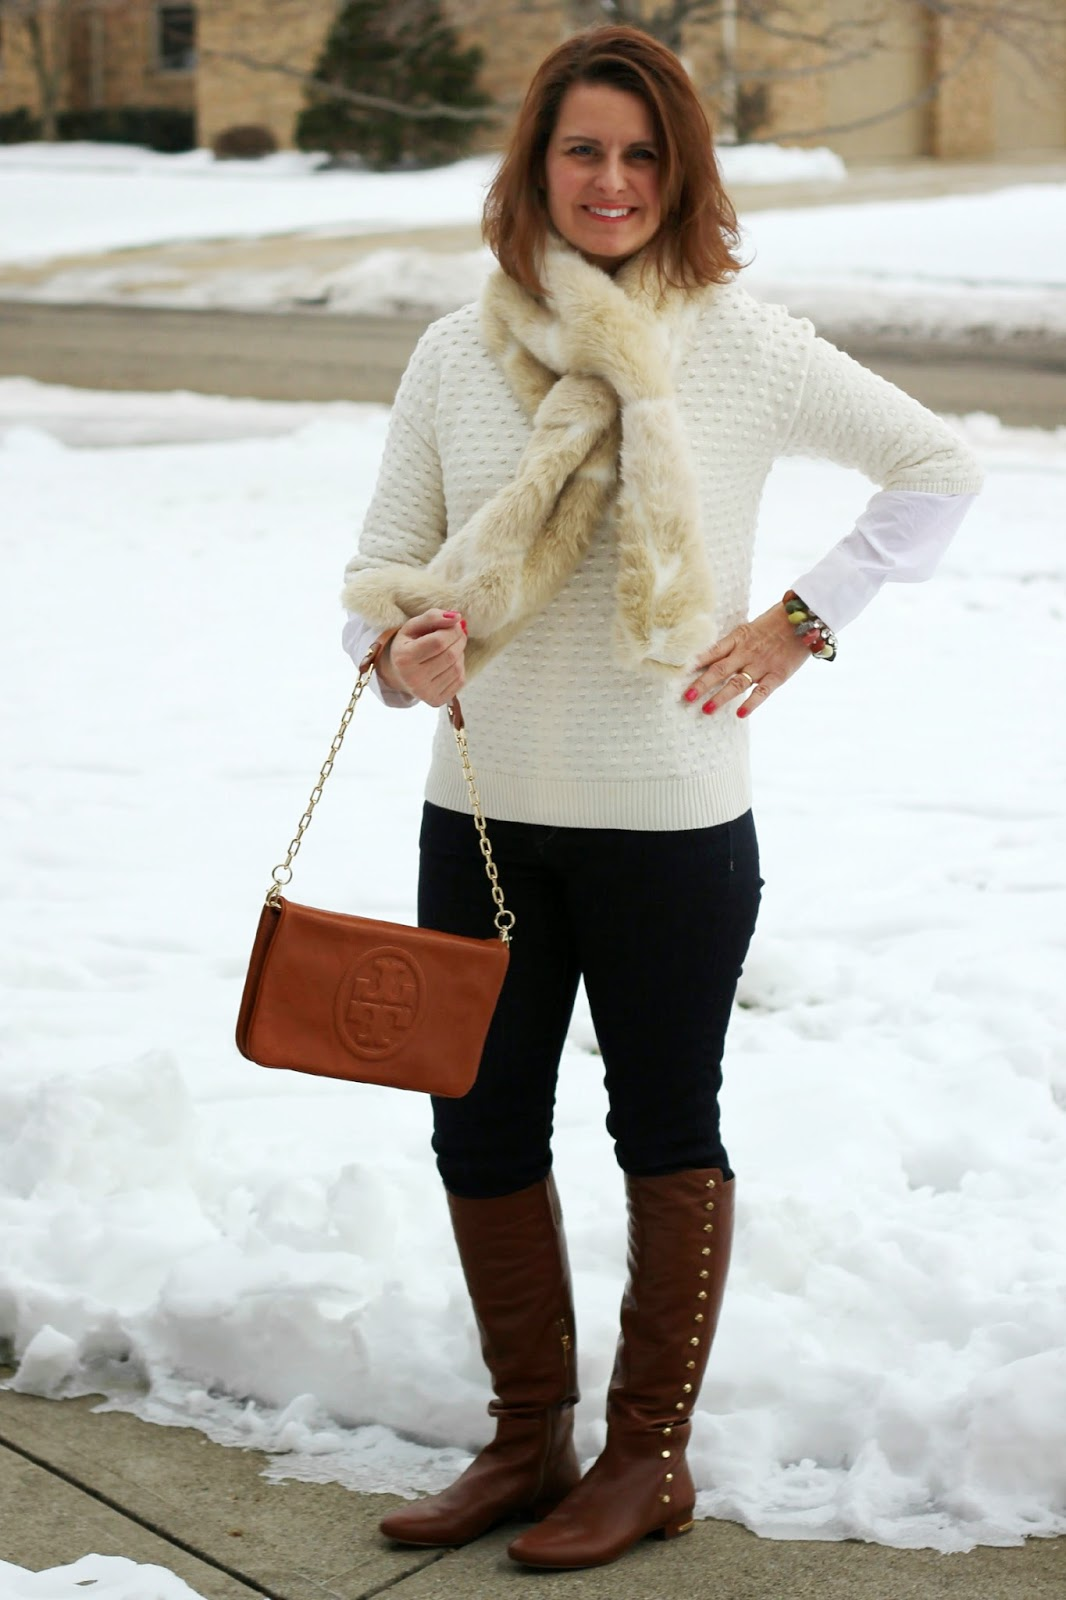 Faux fur scar, neutral colors winter outfit, winter look, cognac accessories and boots